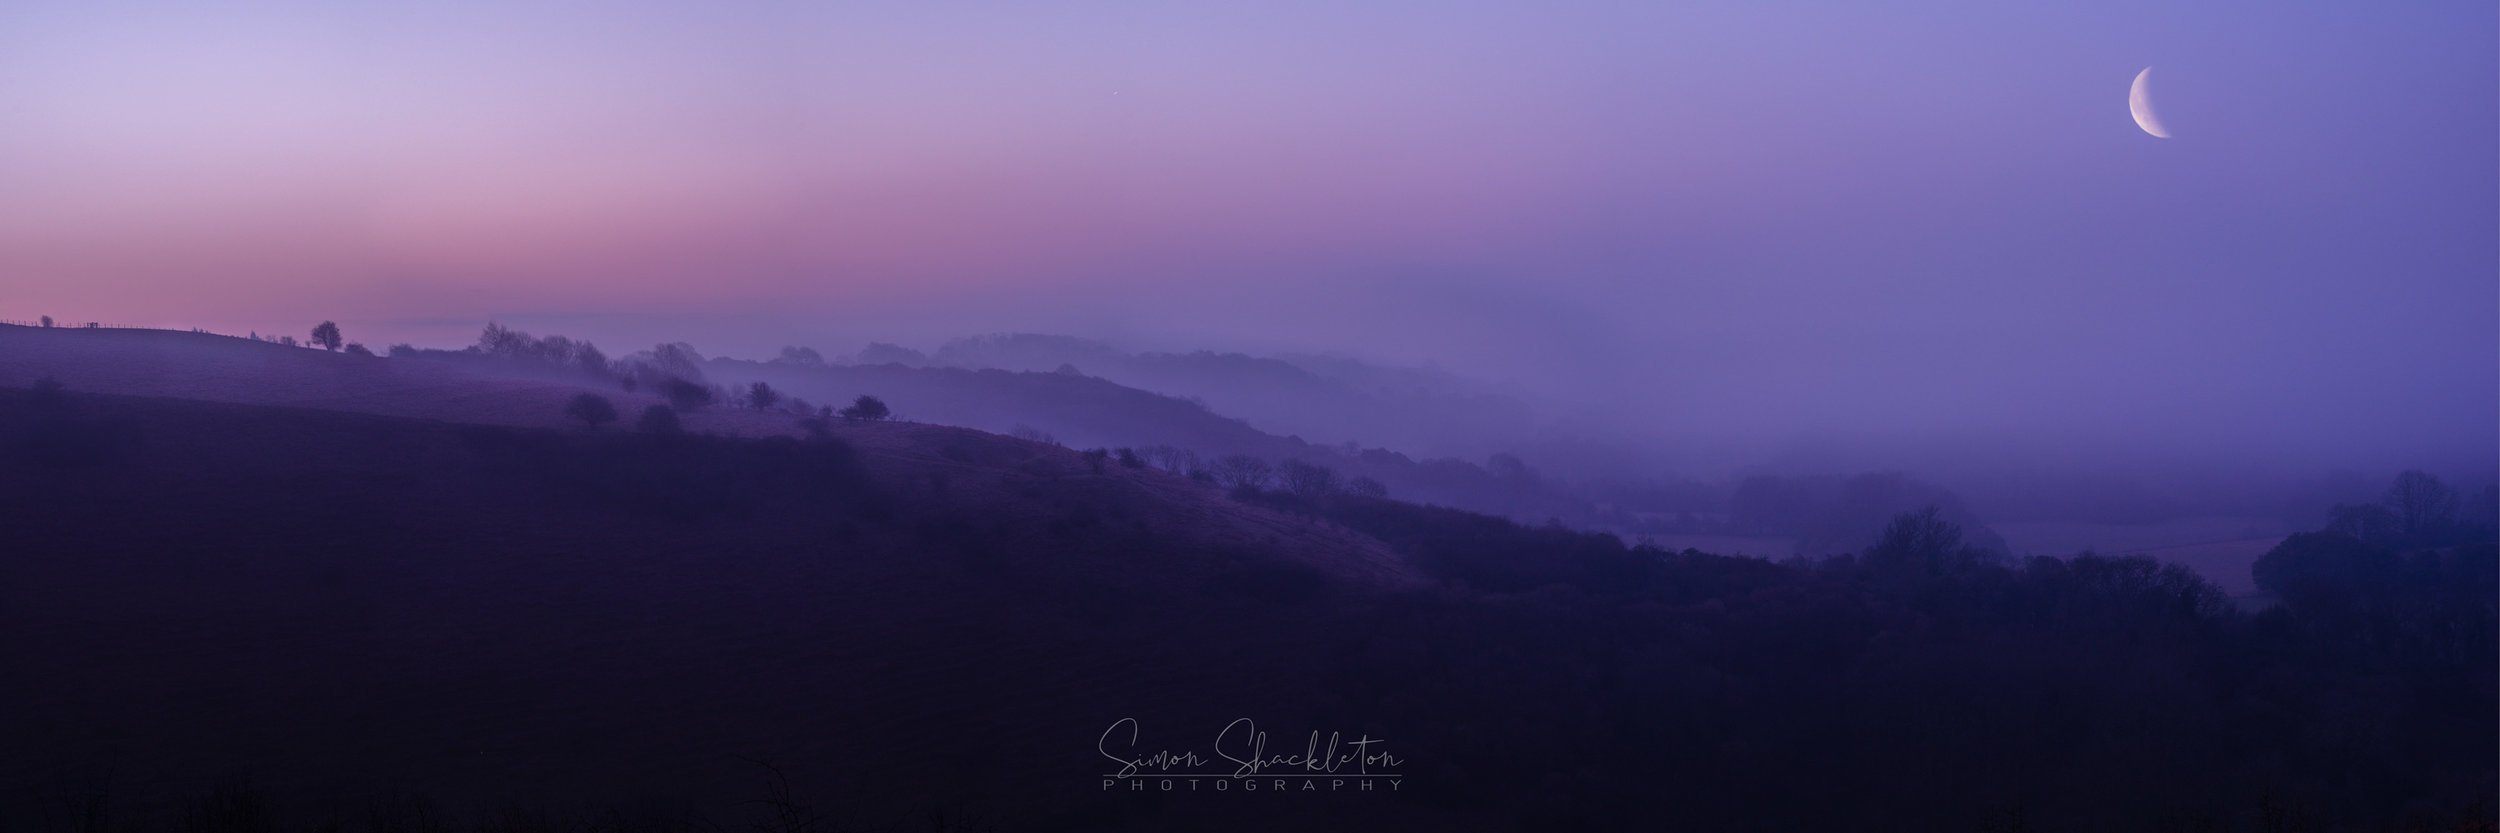 A pre-dawn panorama from the top of the North Downs.